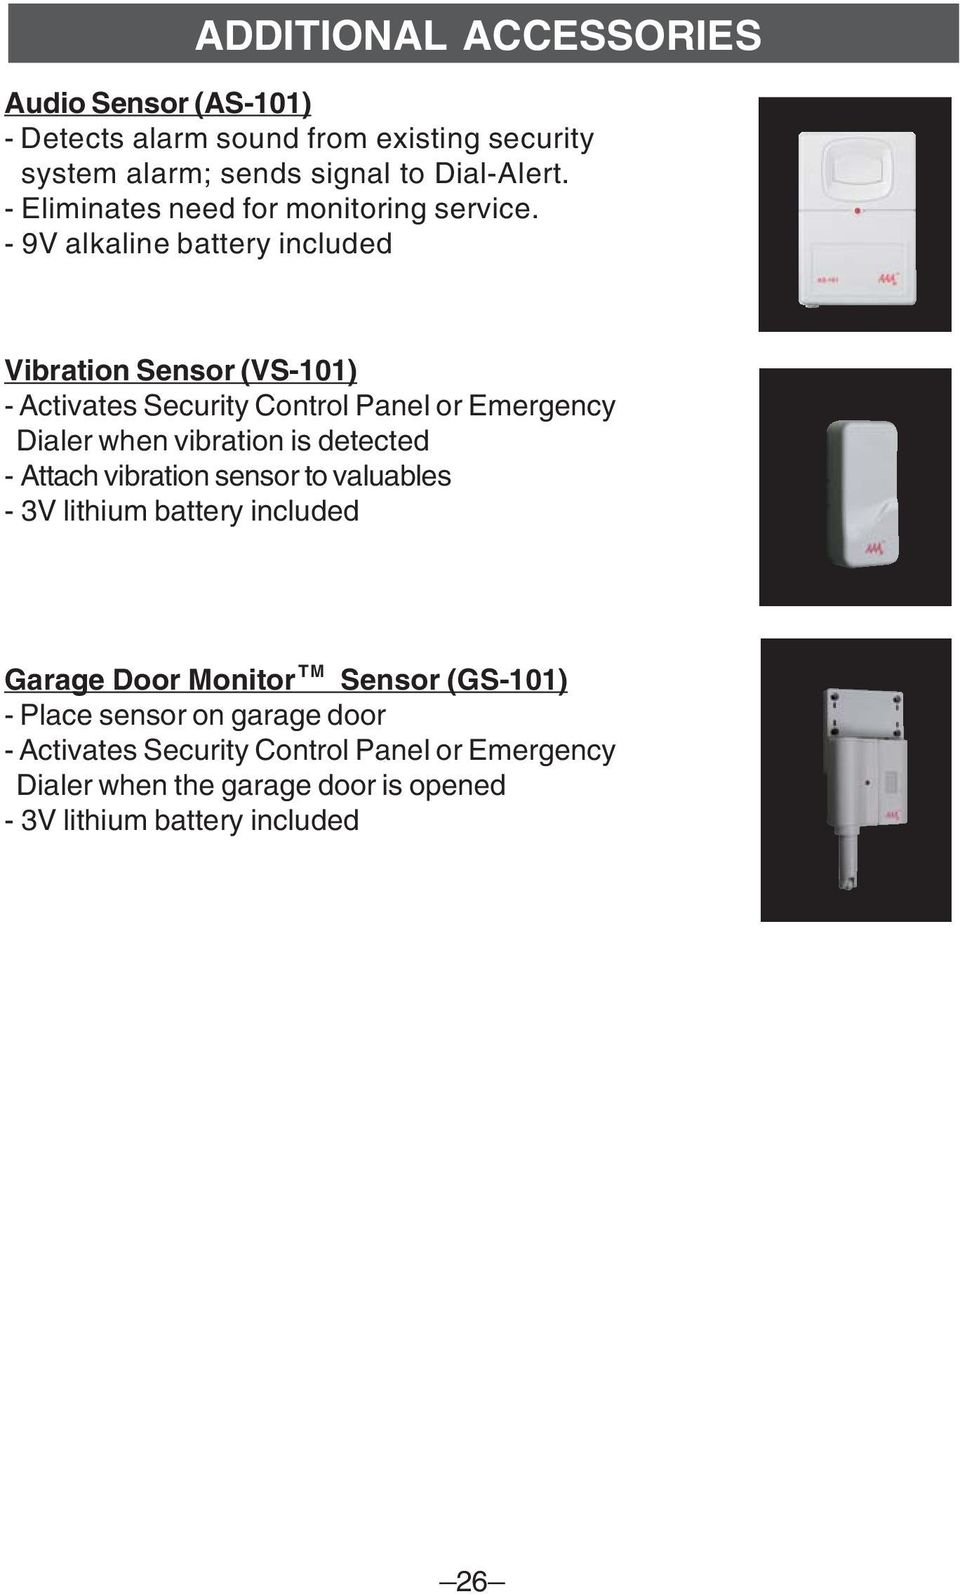 - 9V alkaline battery included Vibration Sensor (VS-101) - Activates Security Control Panel or Emergency Dialer when vibration is detected -